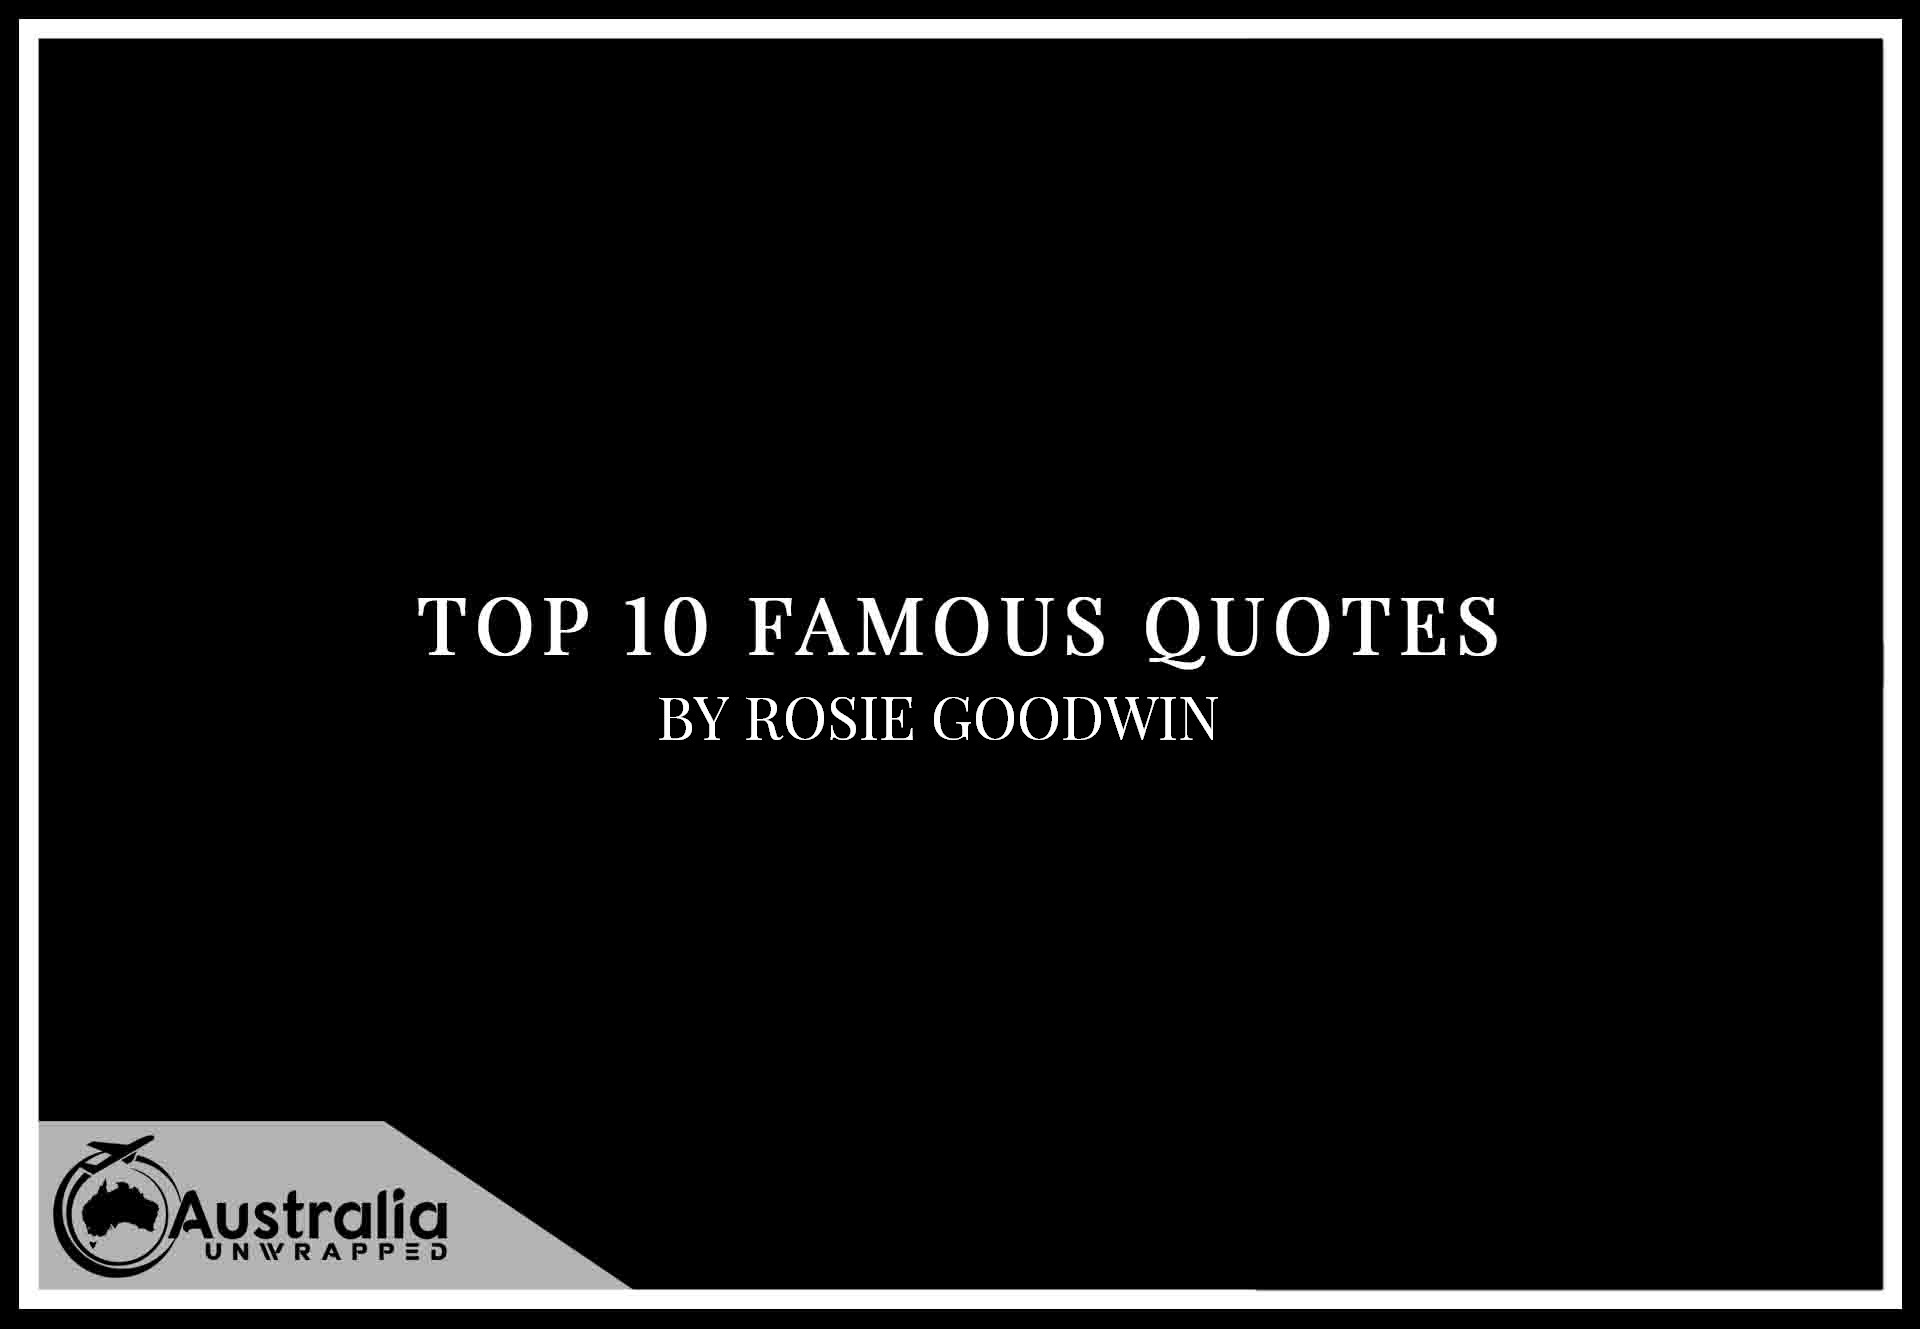 Top 10 Famous Quotes by Author Rosie Goodwin